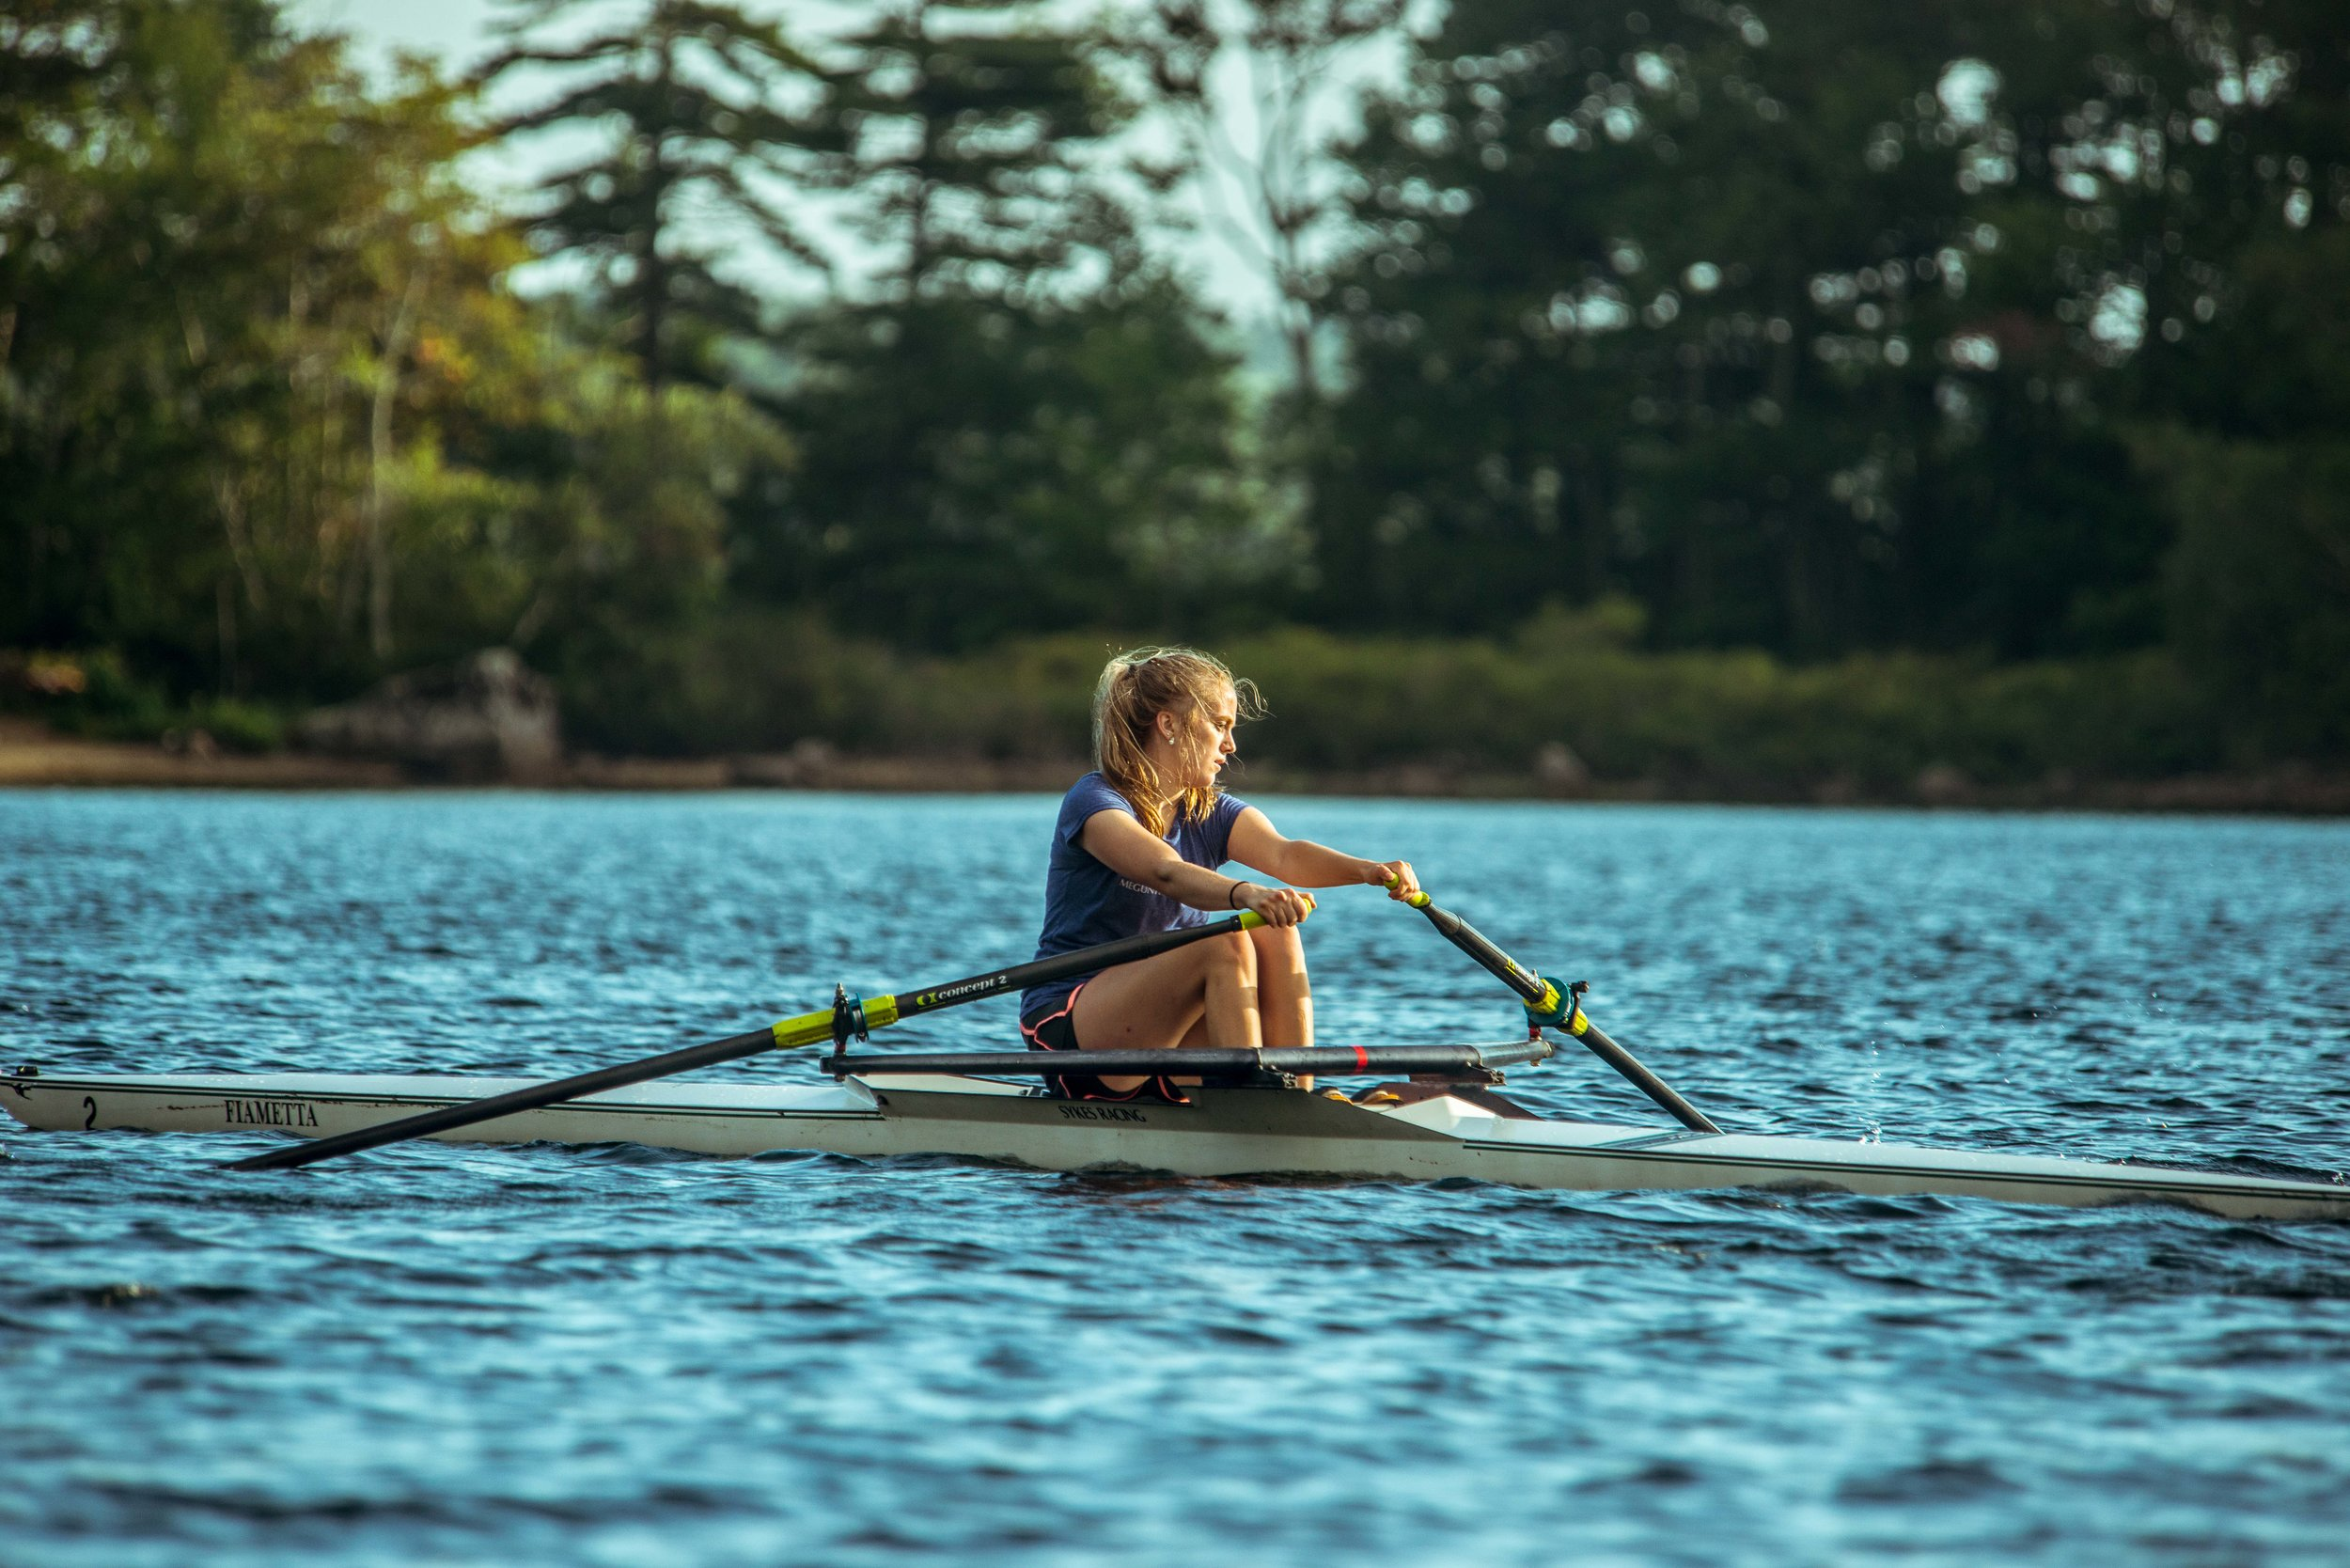 - MASTER'S learn to row level 2